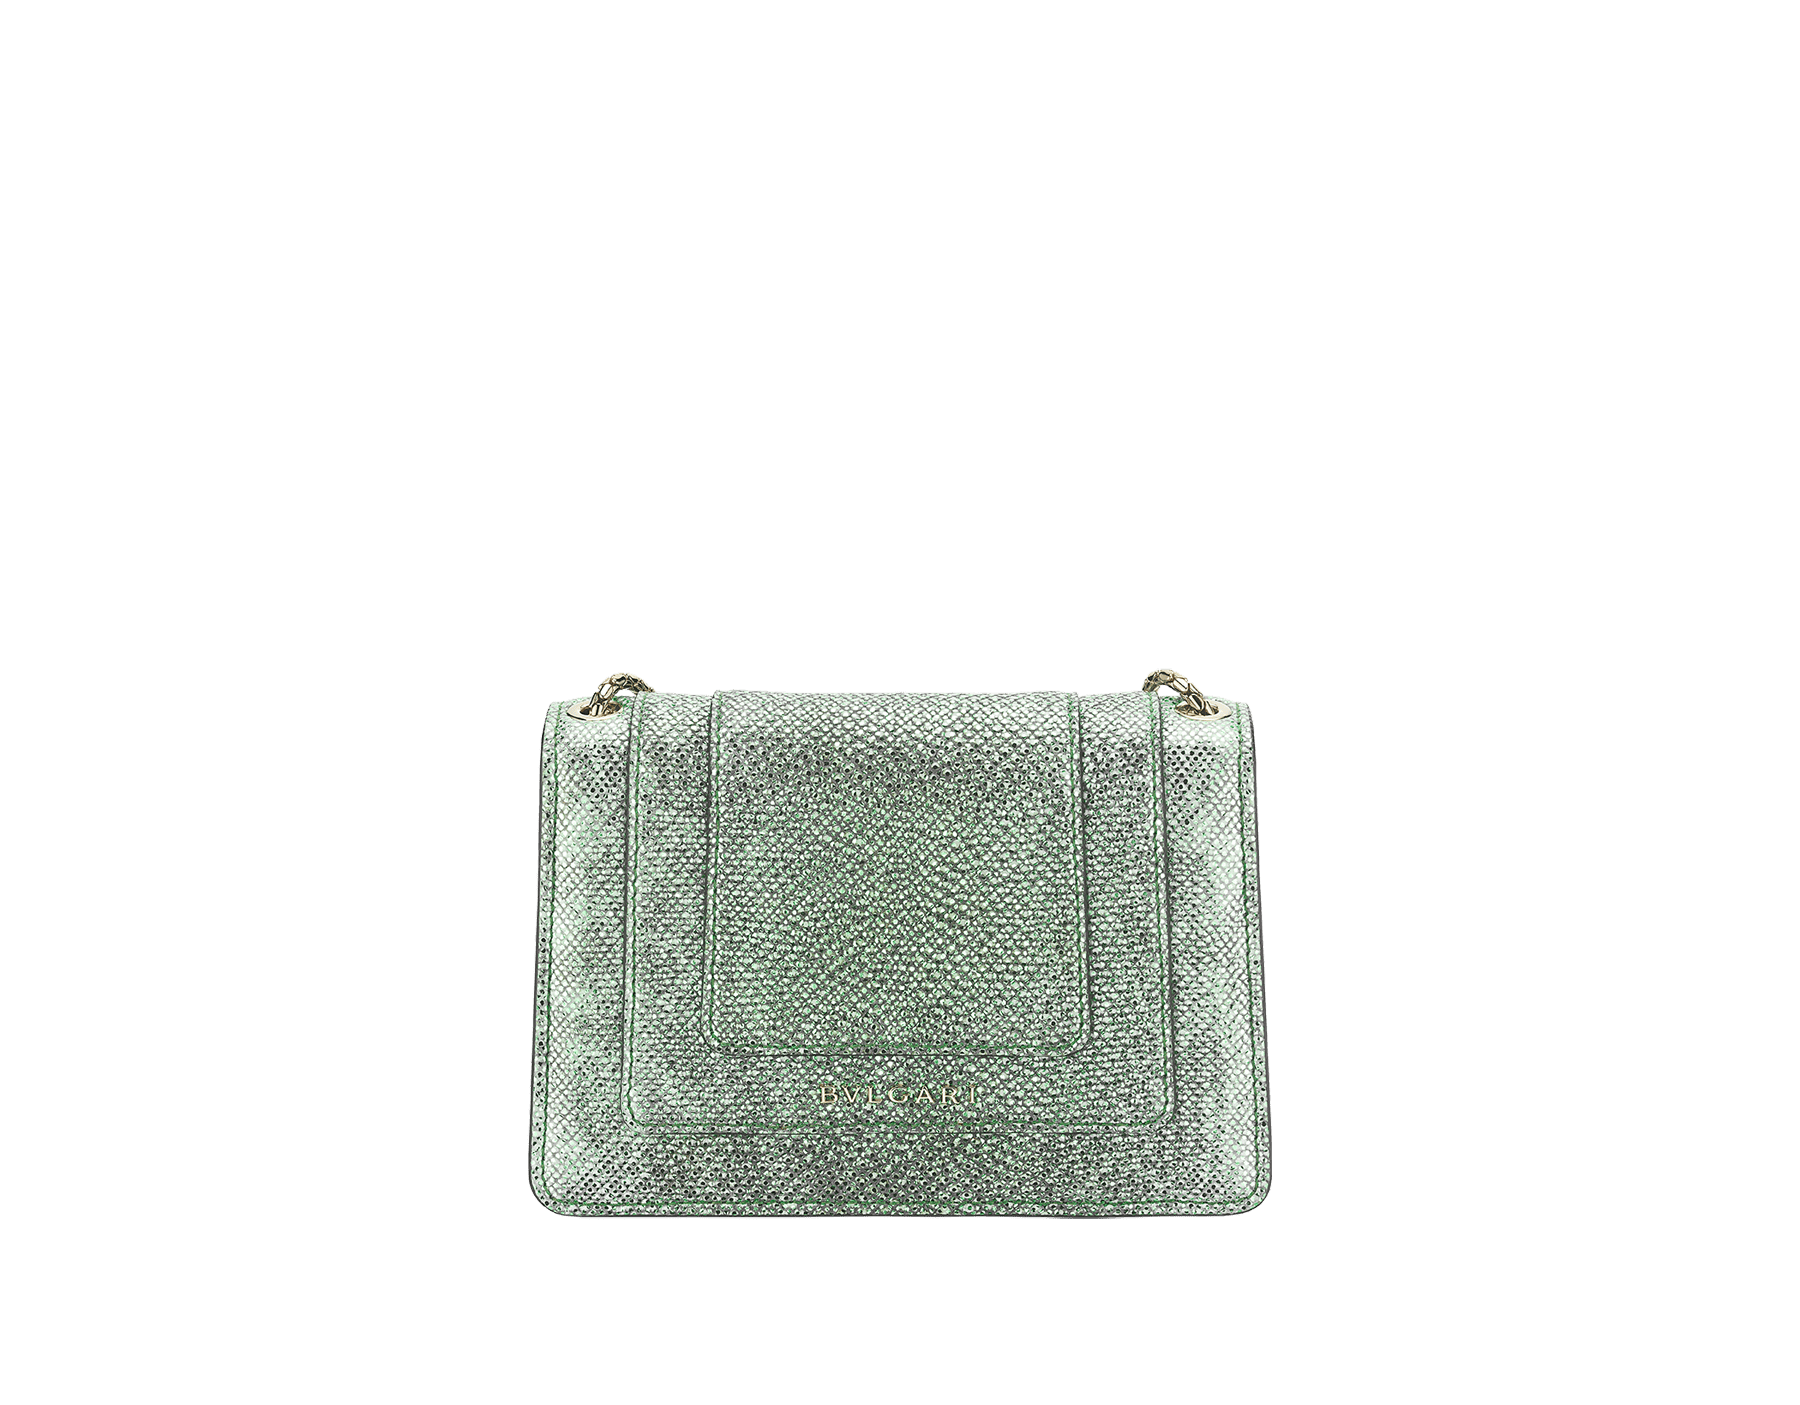 Serpenti Forever mini crossbody bag in white agate metallic karungskin. Brass light gold-plated snake head closure in black and white enamel, with black onyx eyes. 986-MK image 3